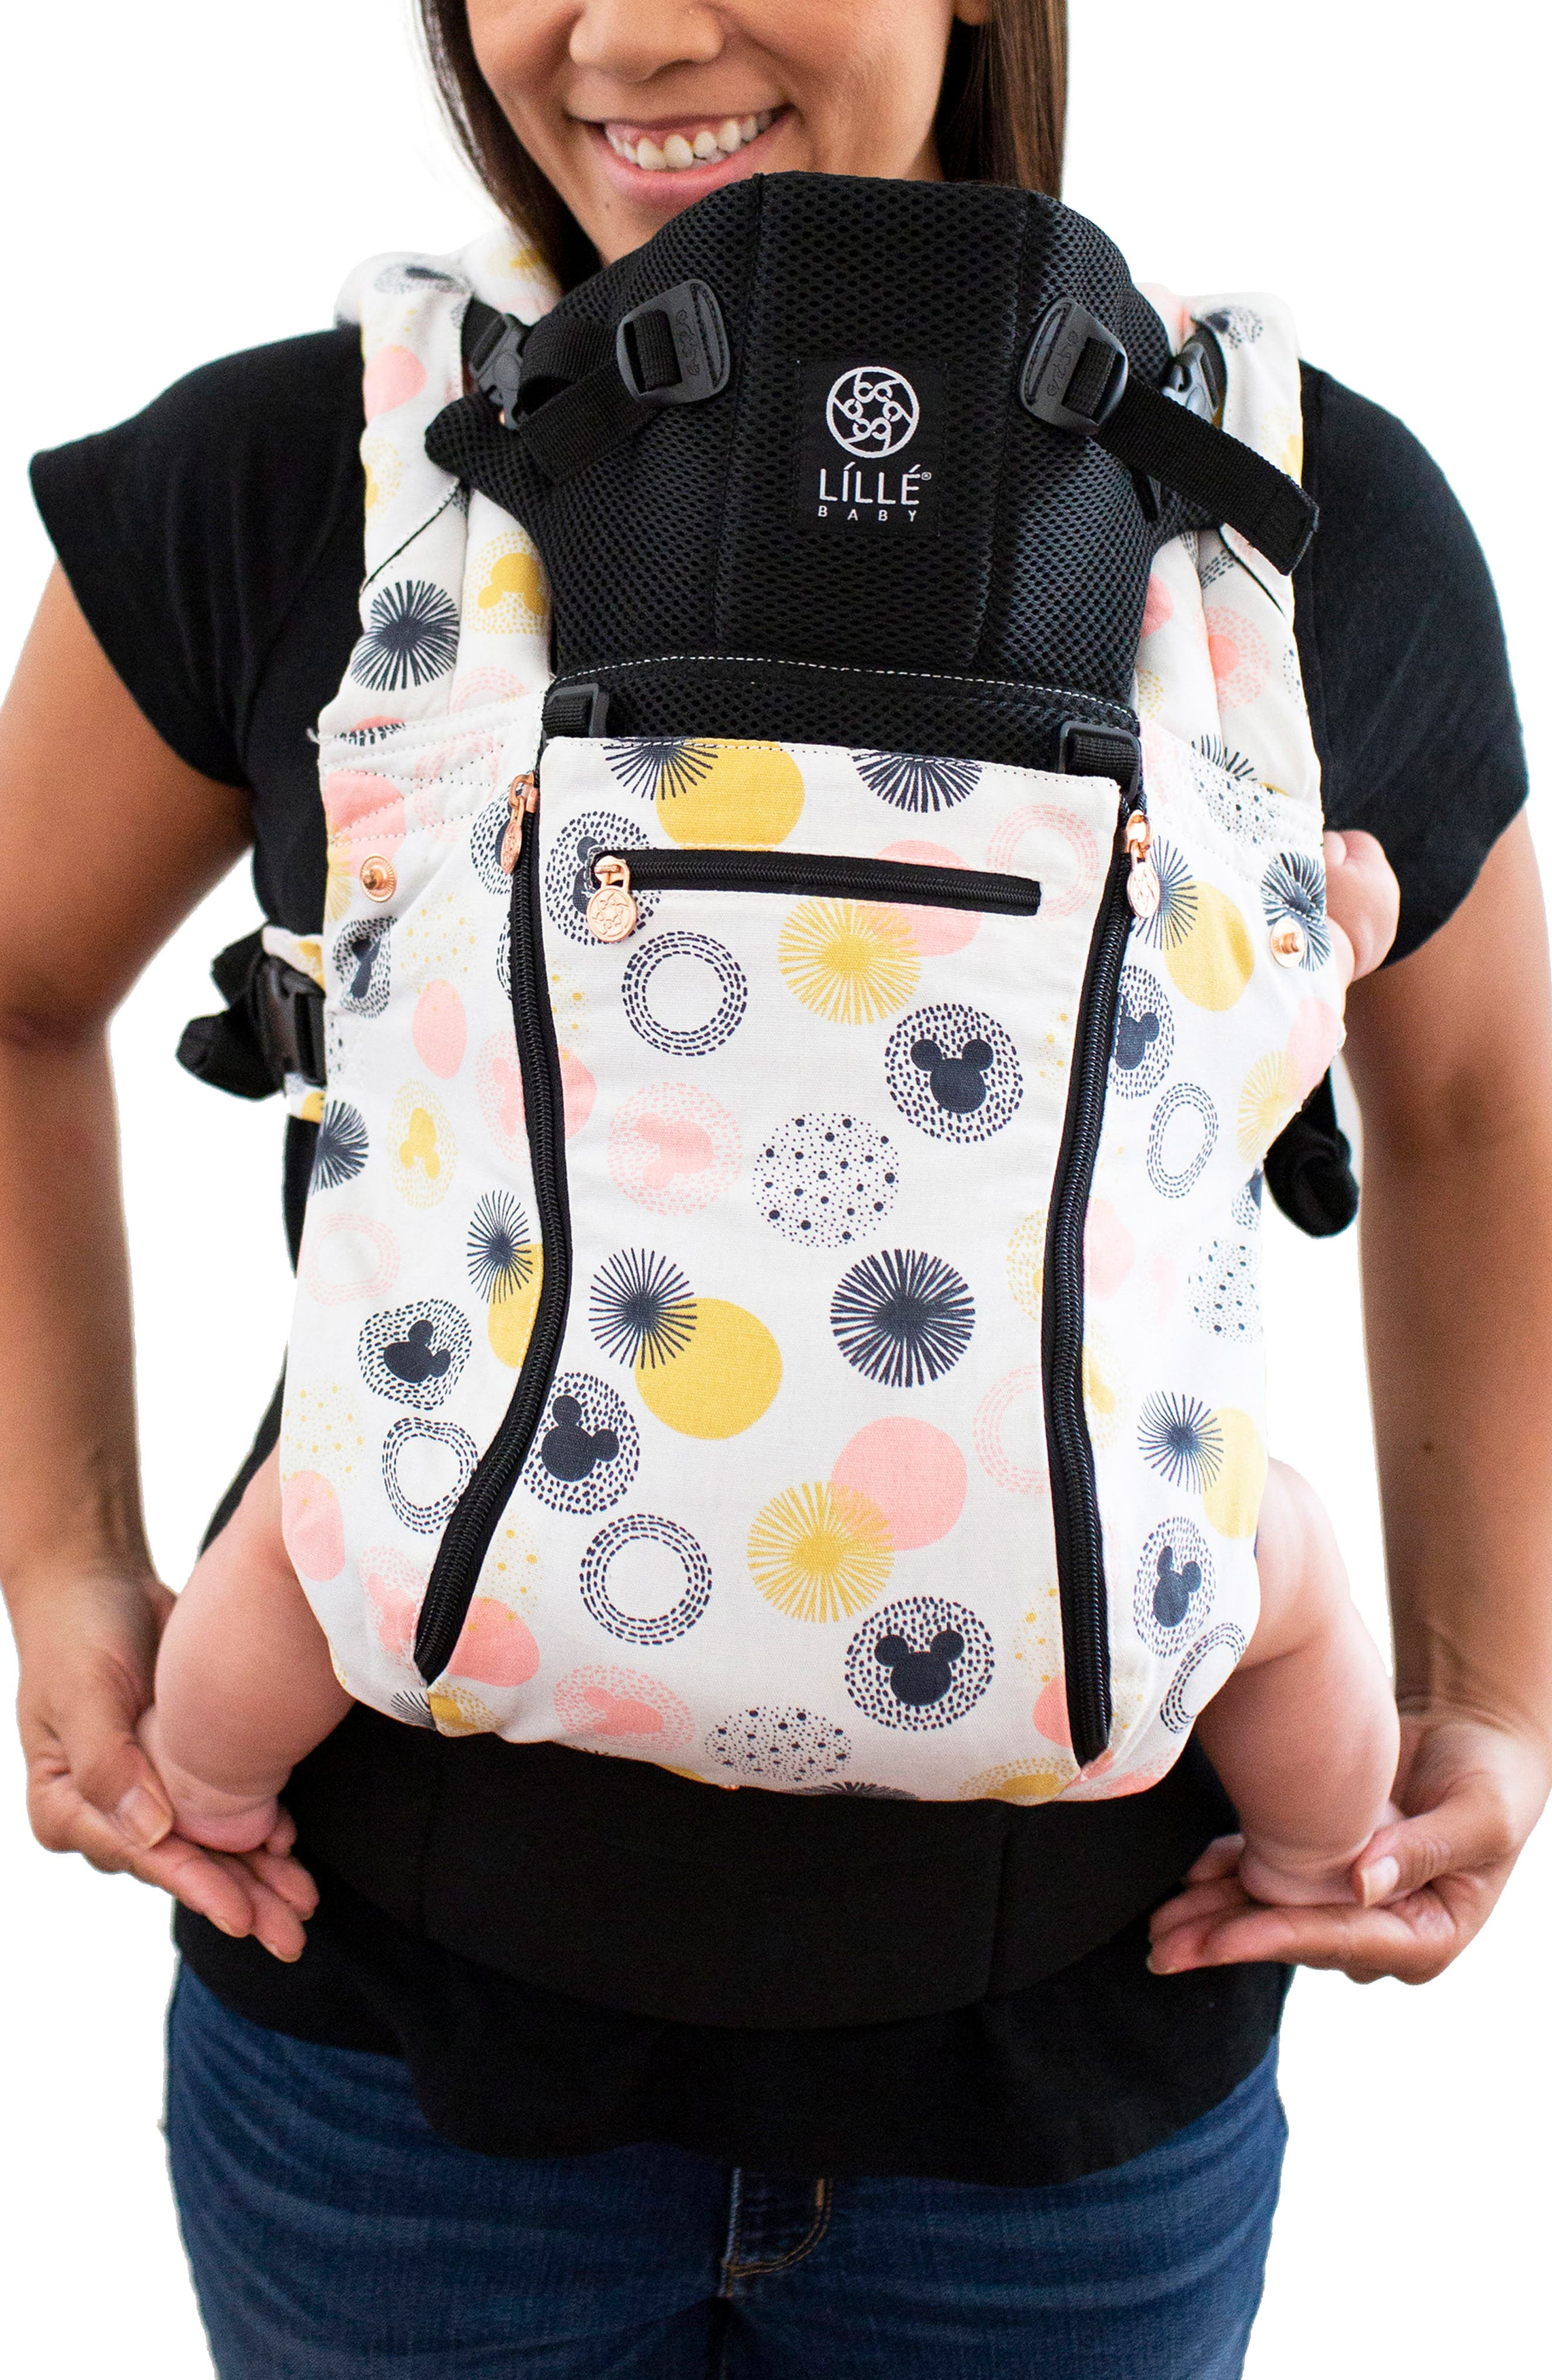 Infant Lillebaby Jubilee All Seasons Baby Carrier Size One Size  Black